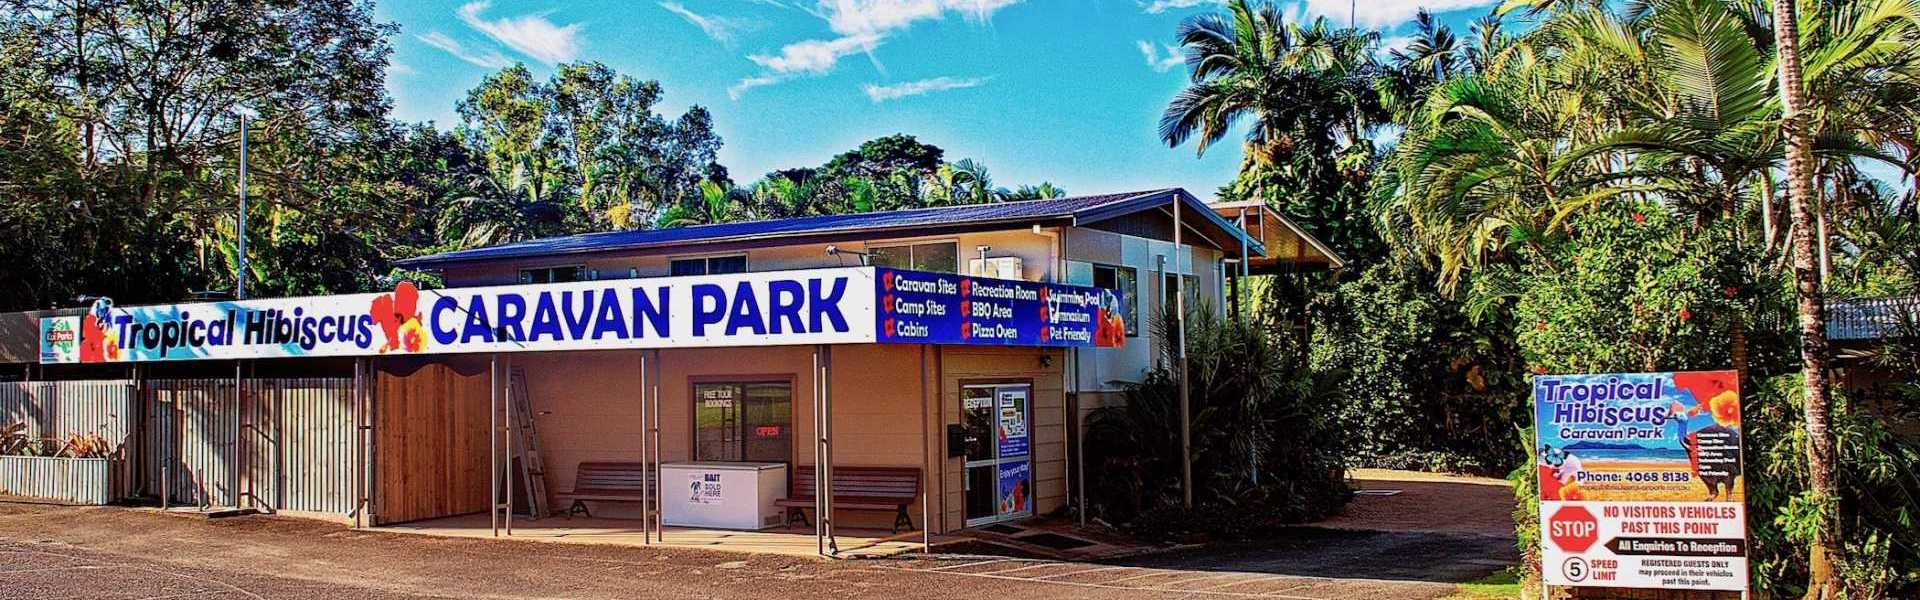 Kui Parks, Tropical Hibiscus Caravan Park, Mission Beach, Entrance